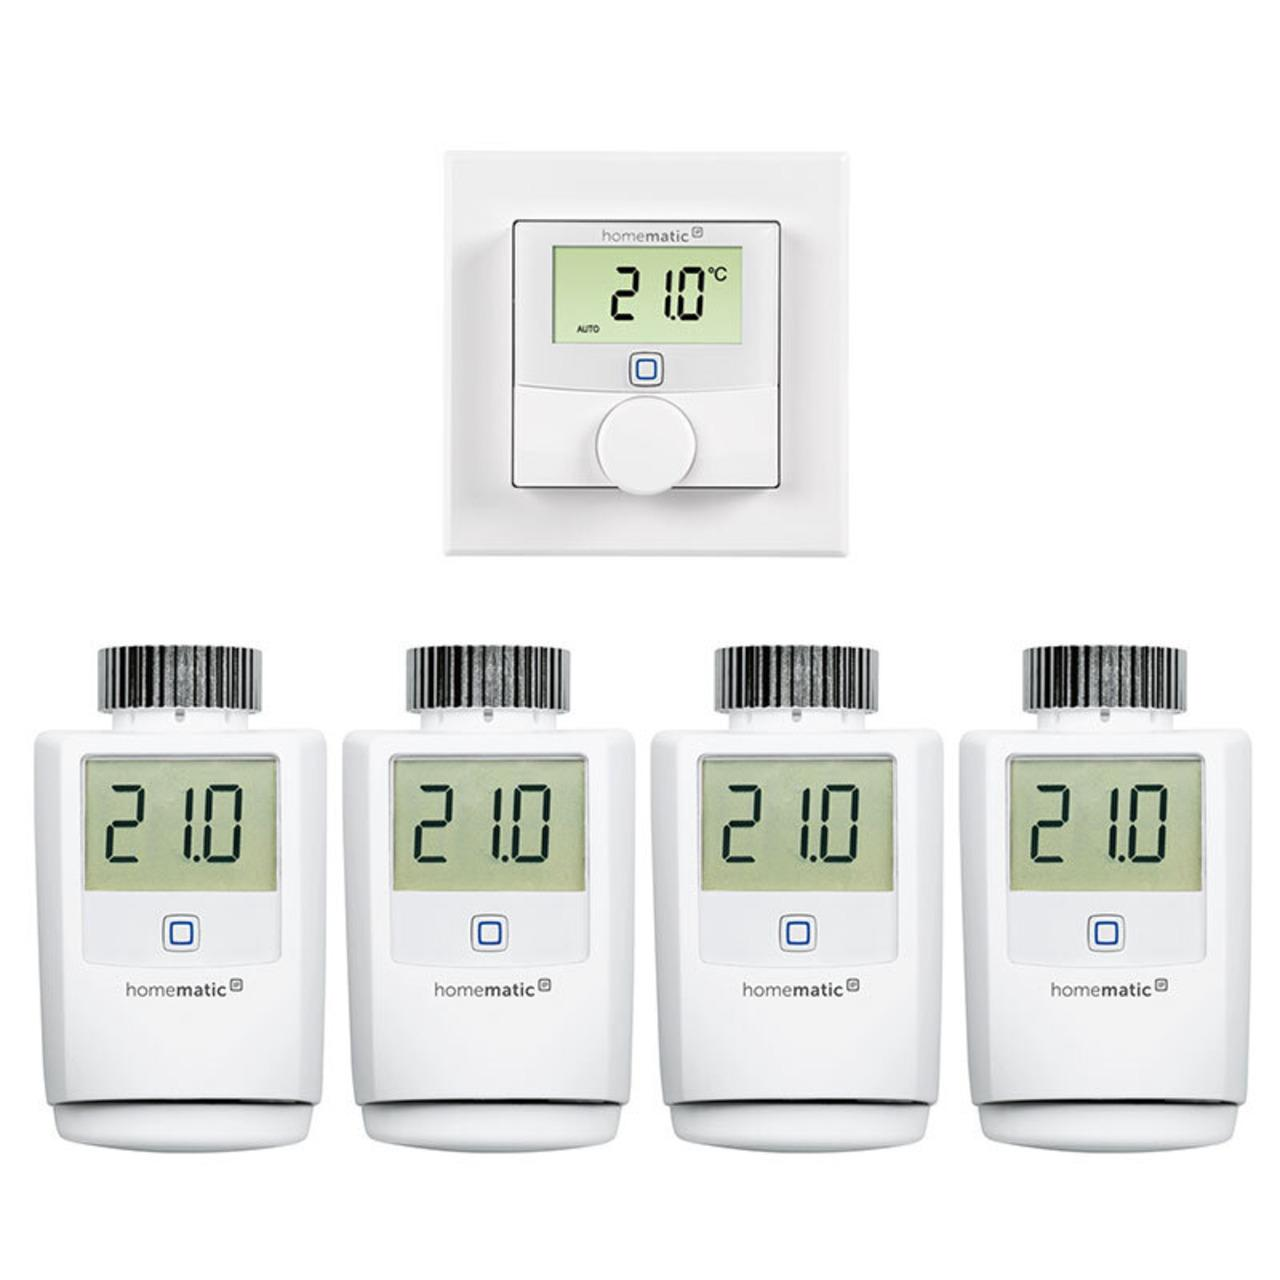 Homematic IP Smart Home Set Heizung mit 4x Heizkörperthermostat und 1x Wandthermostat